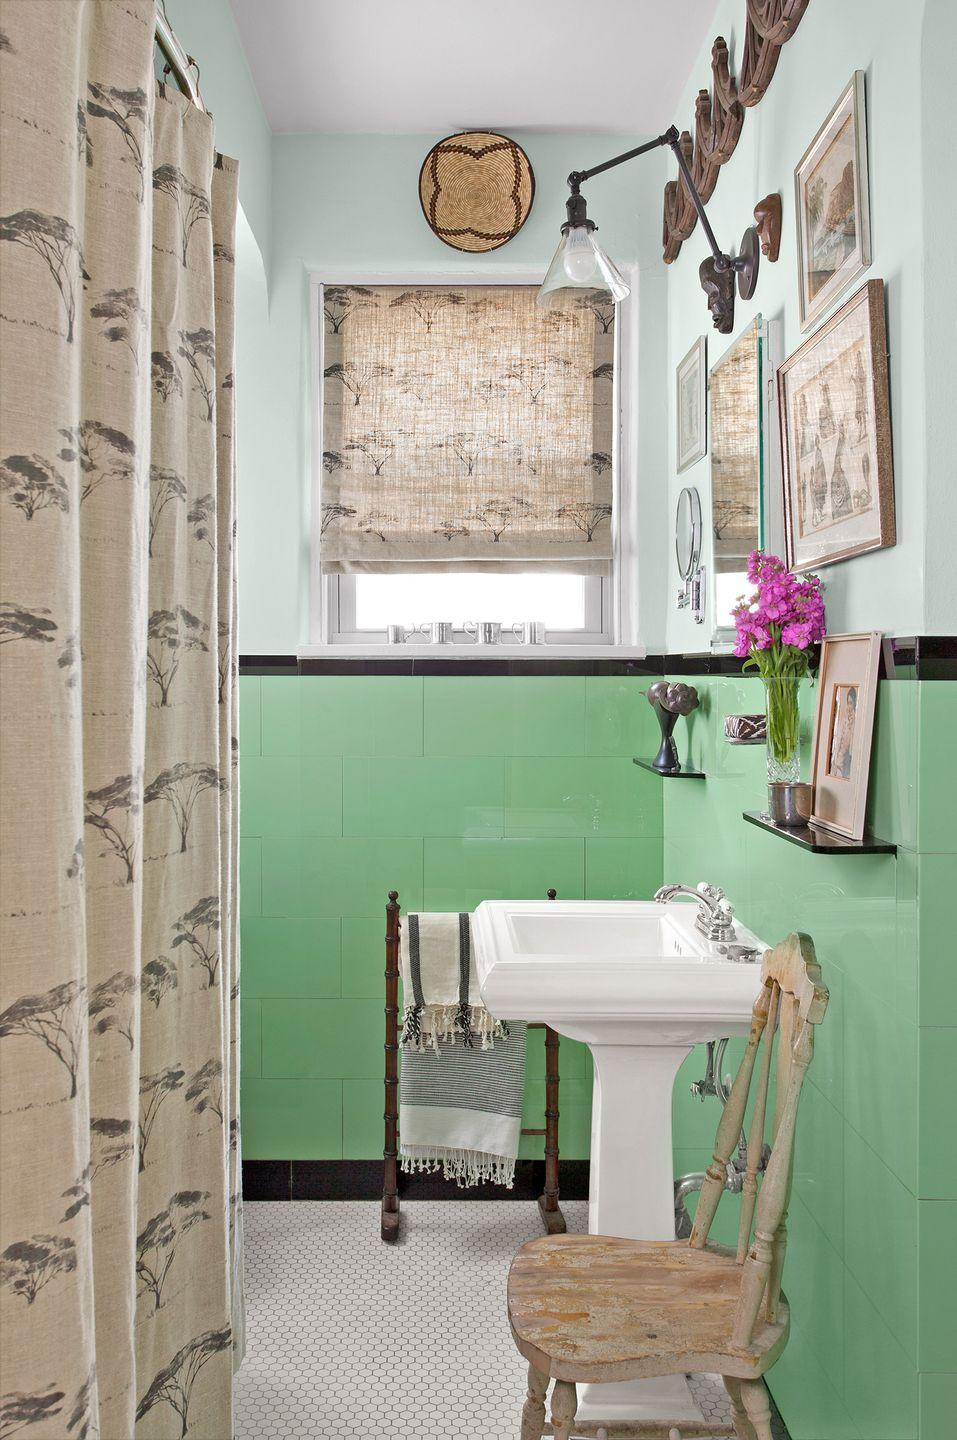 <p>In this bathroom, mint green tiles add a playful element while neutral tones add a sense of warmth. </p>